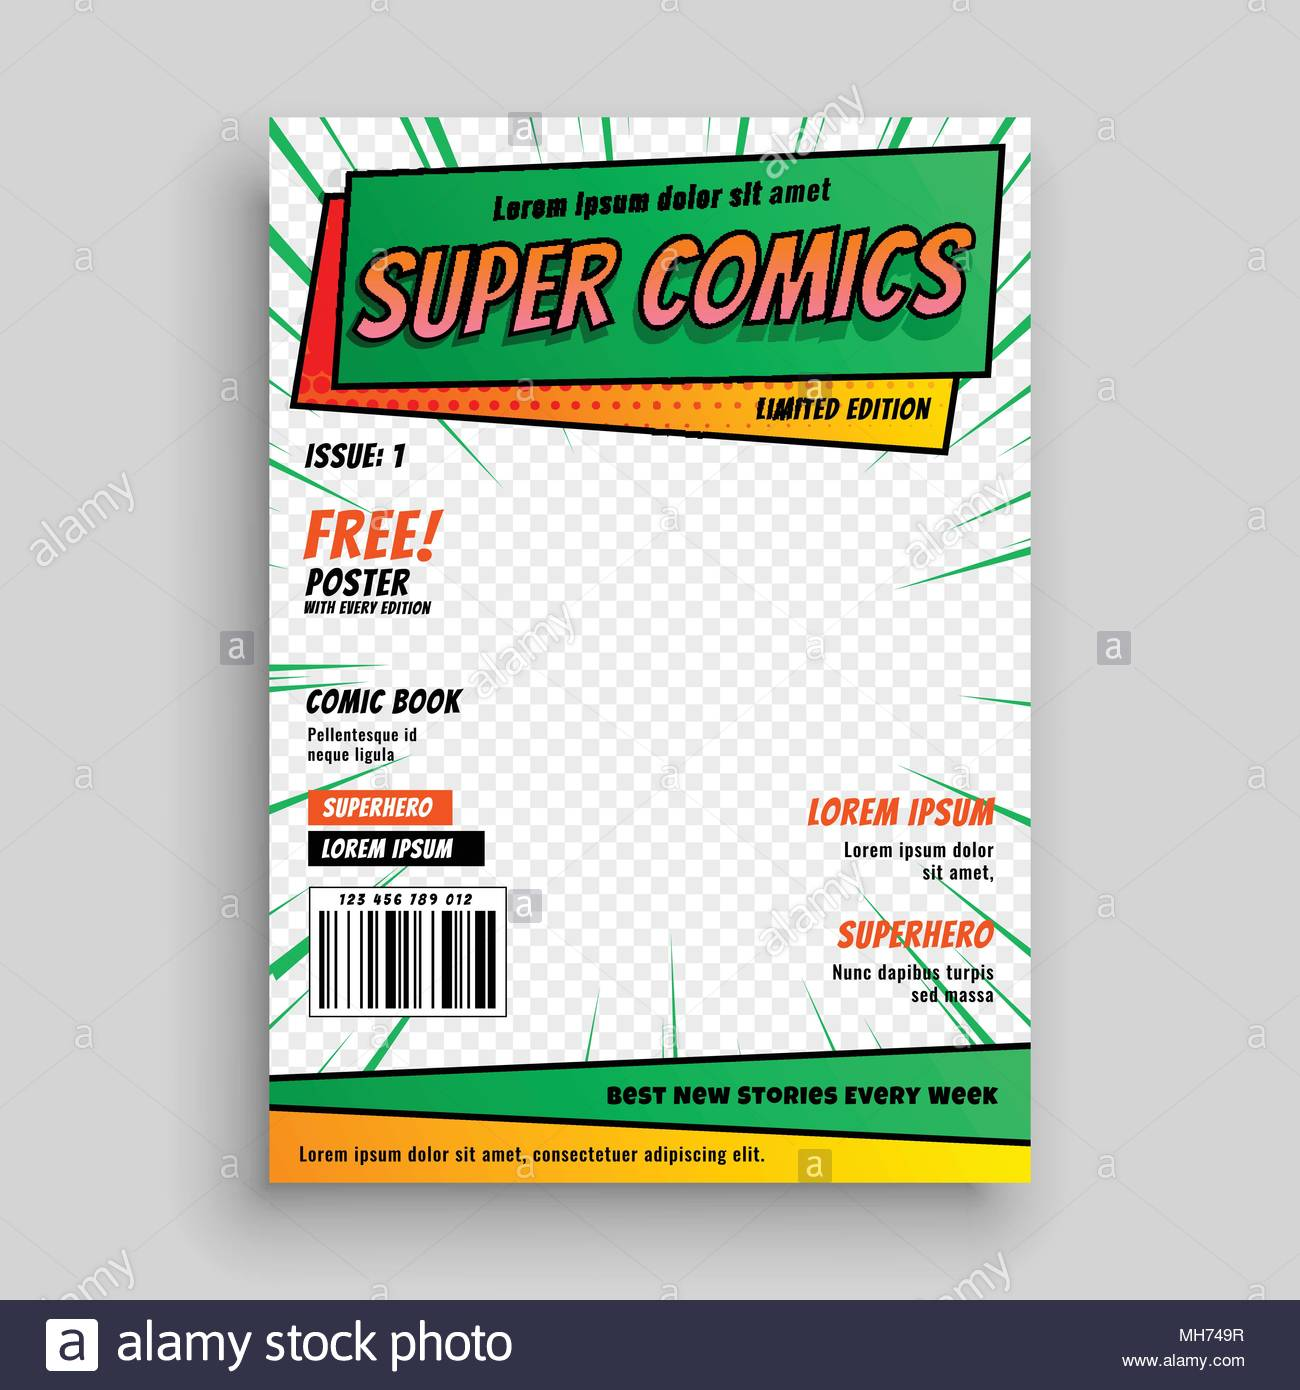 Comic book cover layout template stock vector art illustration comic book cover layout template maxwellsz